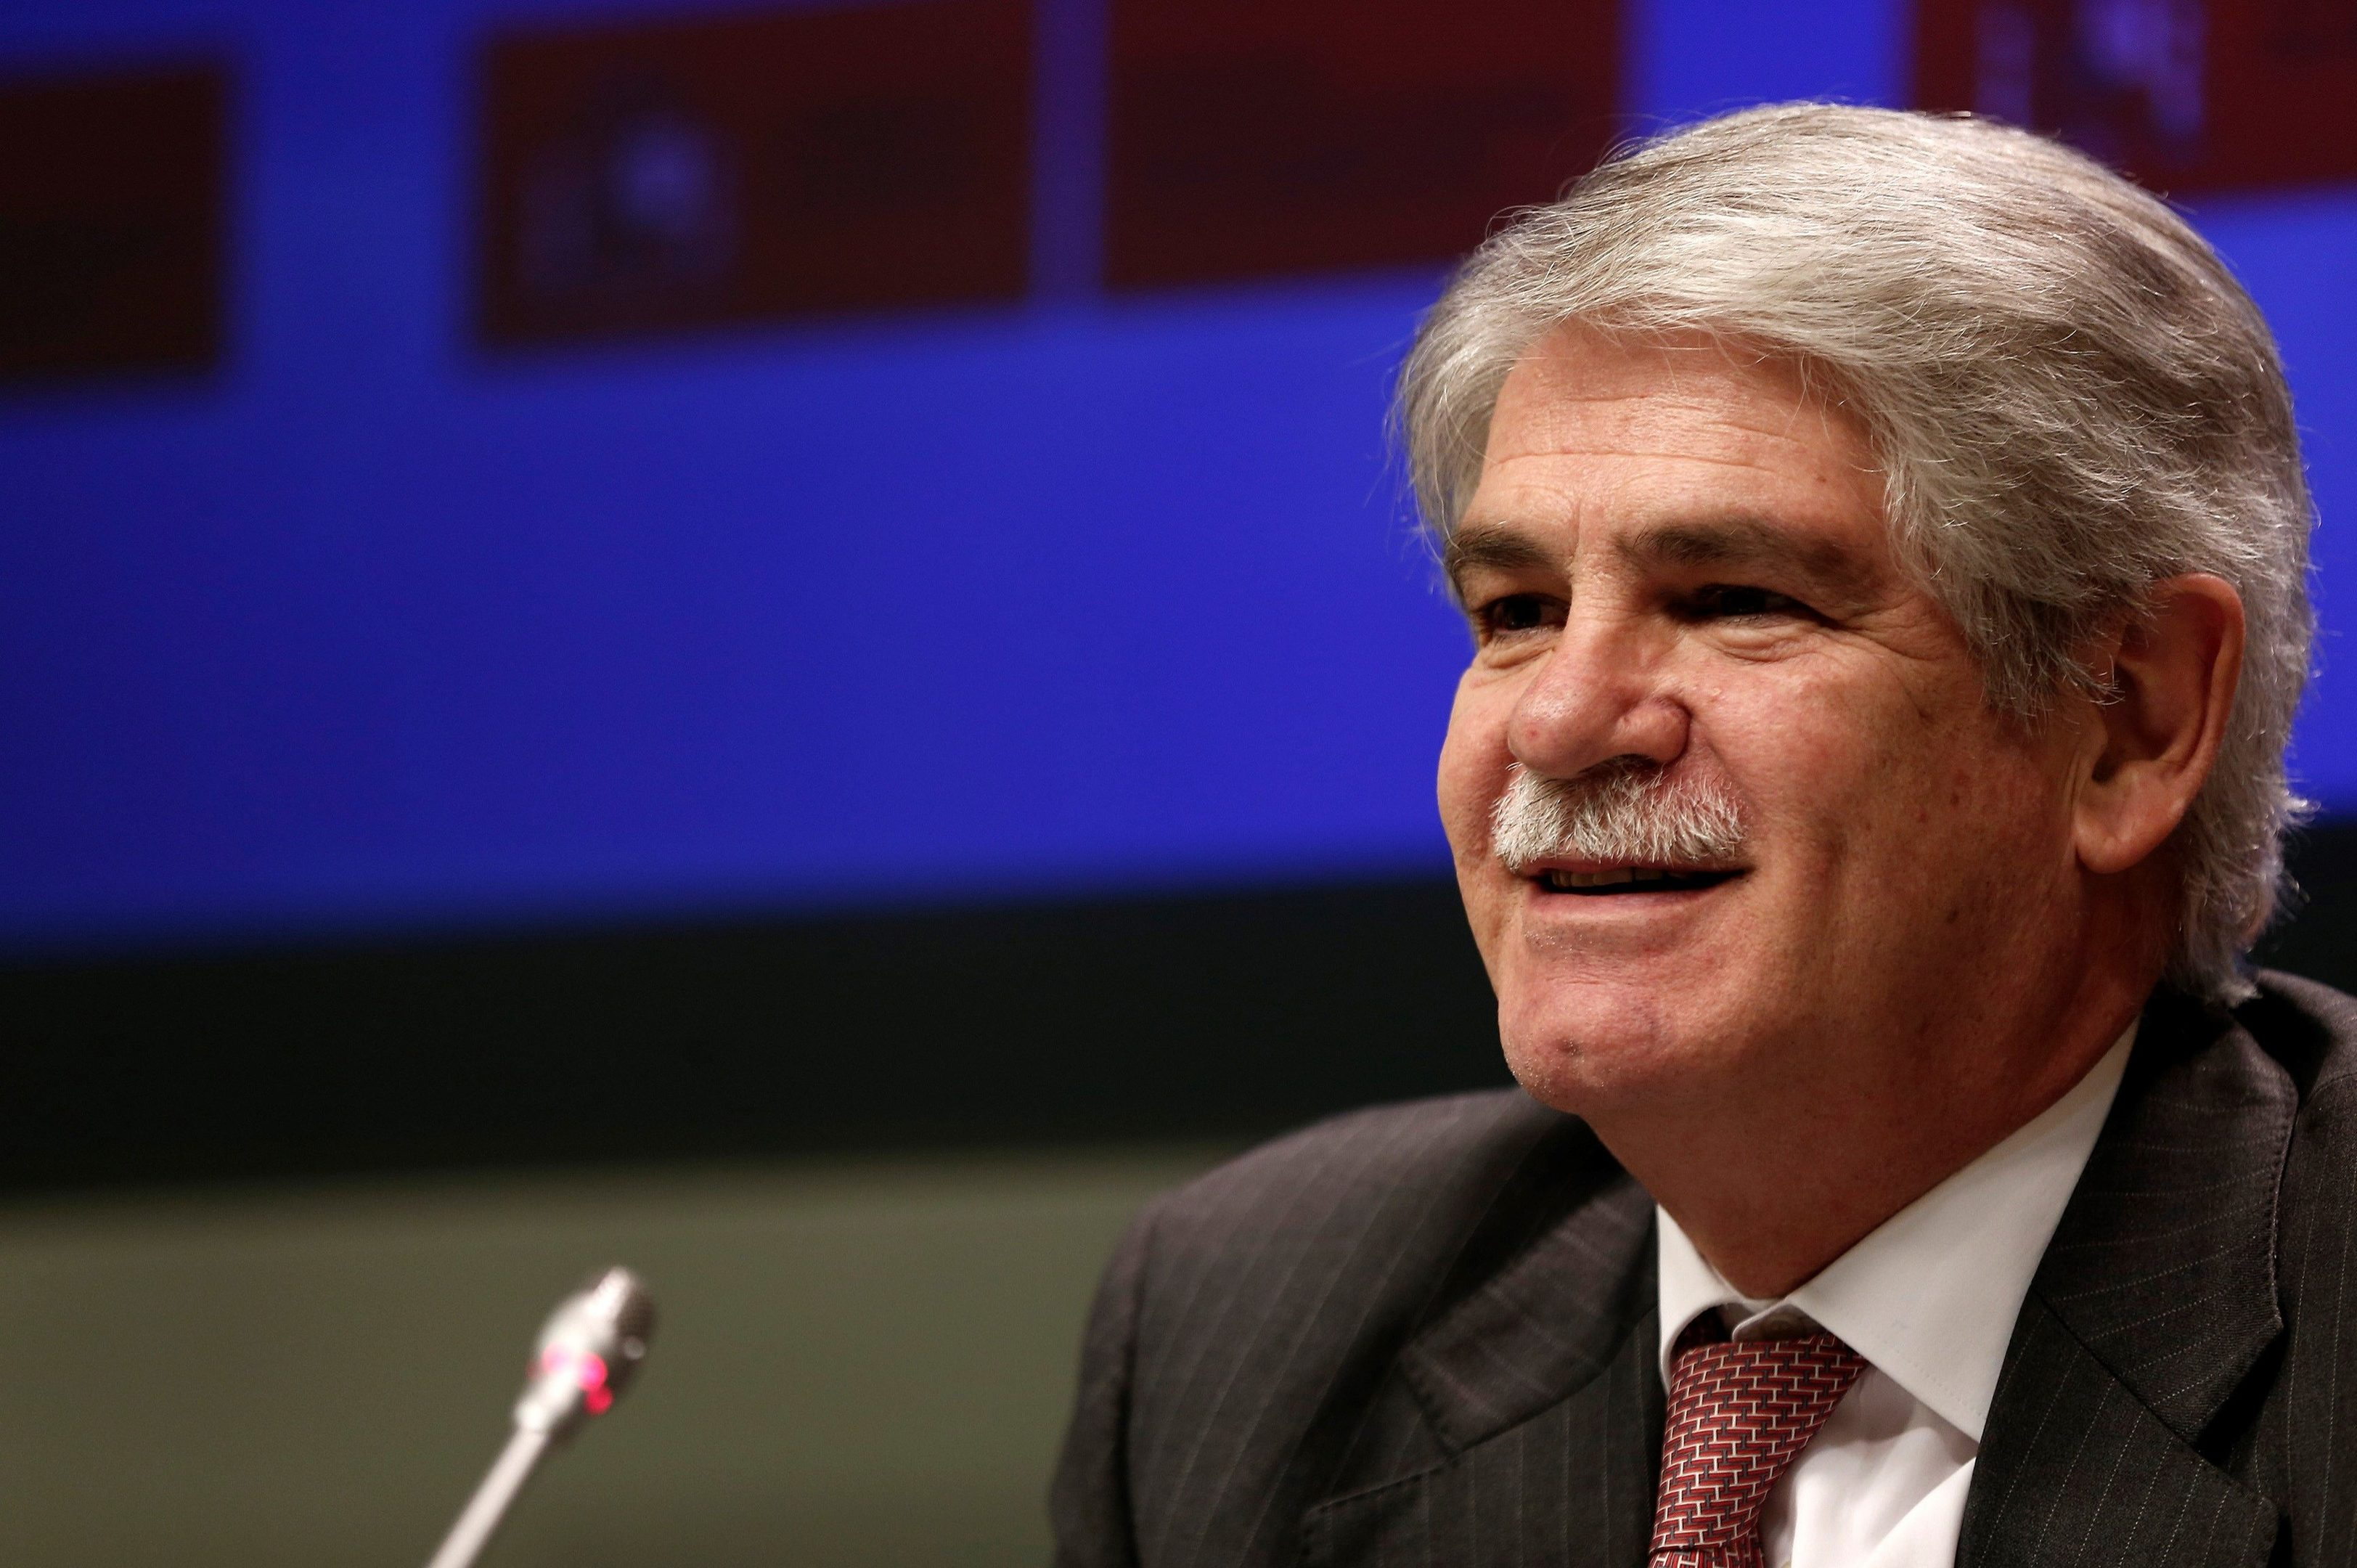 Spanish Foreign Minister Alfonso Dastis